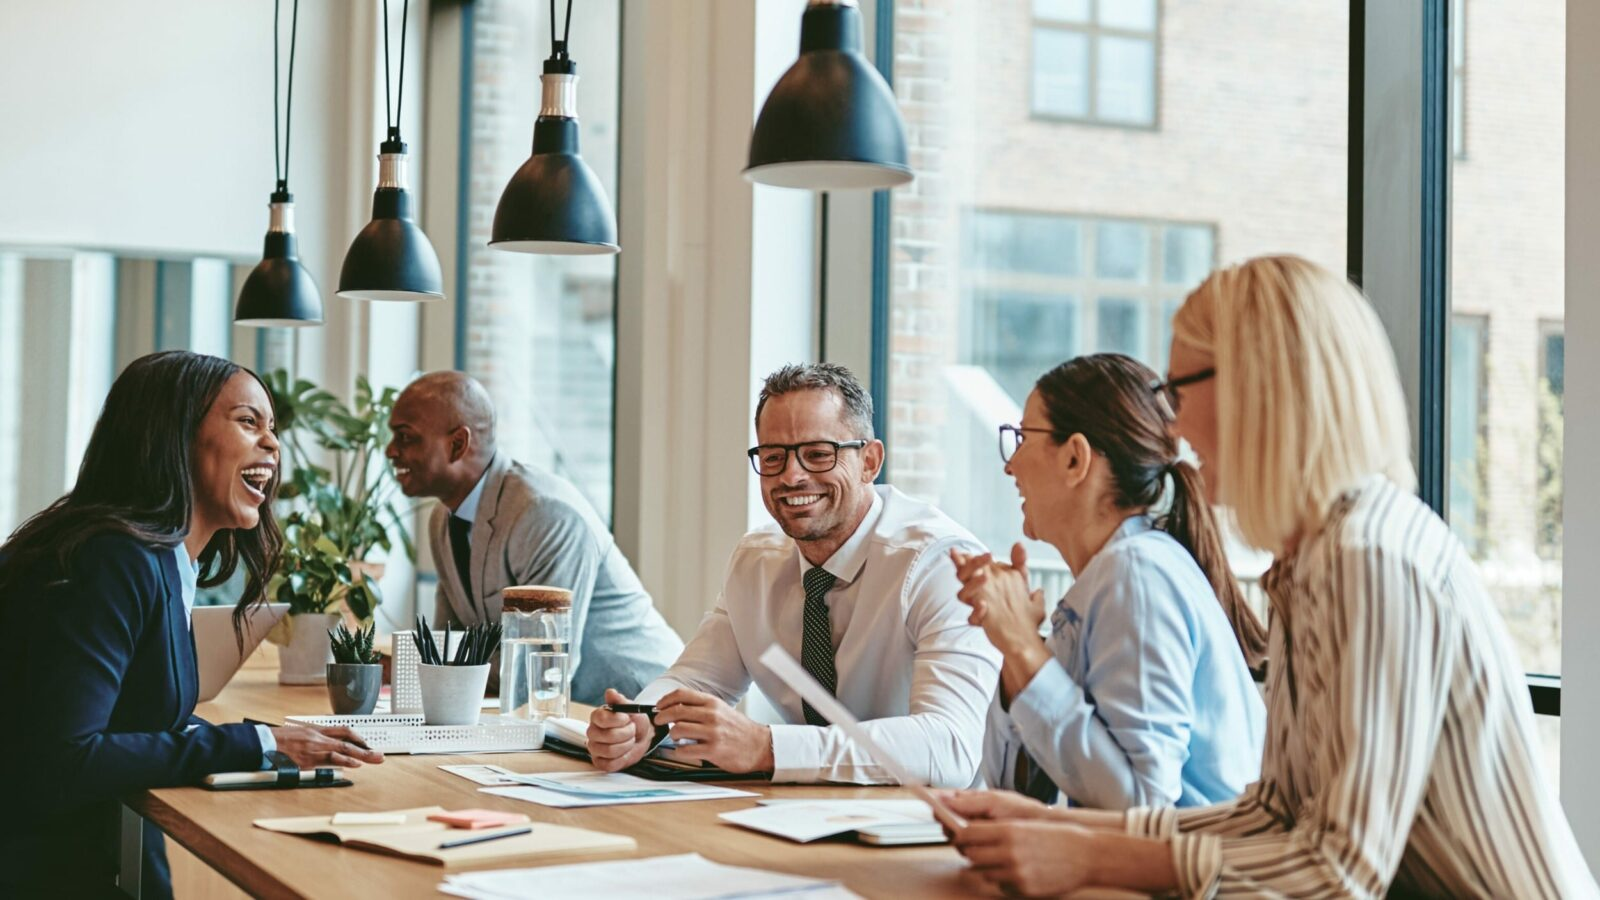 Who own company culture?